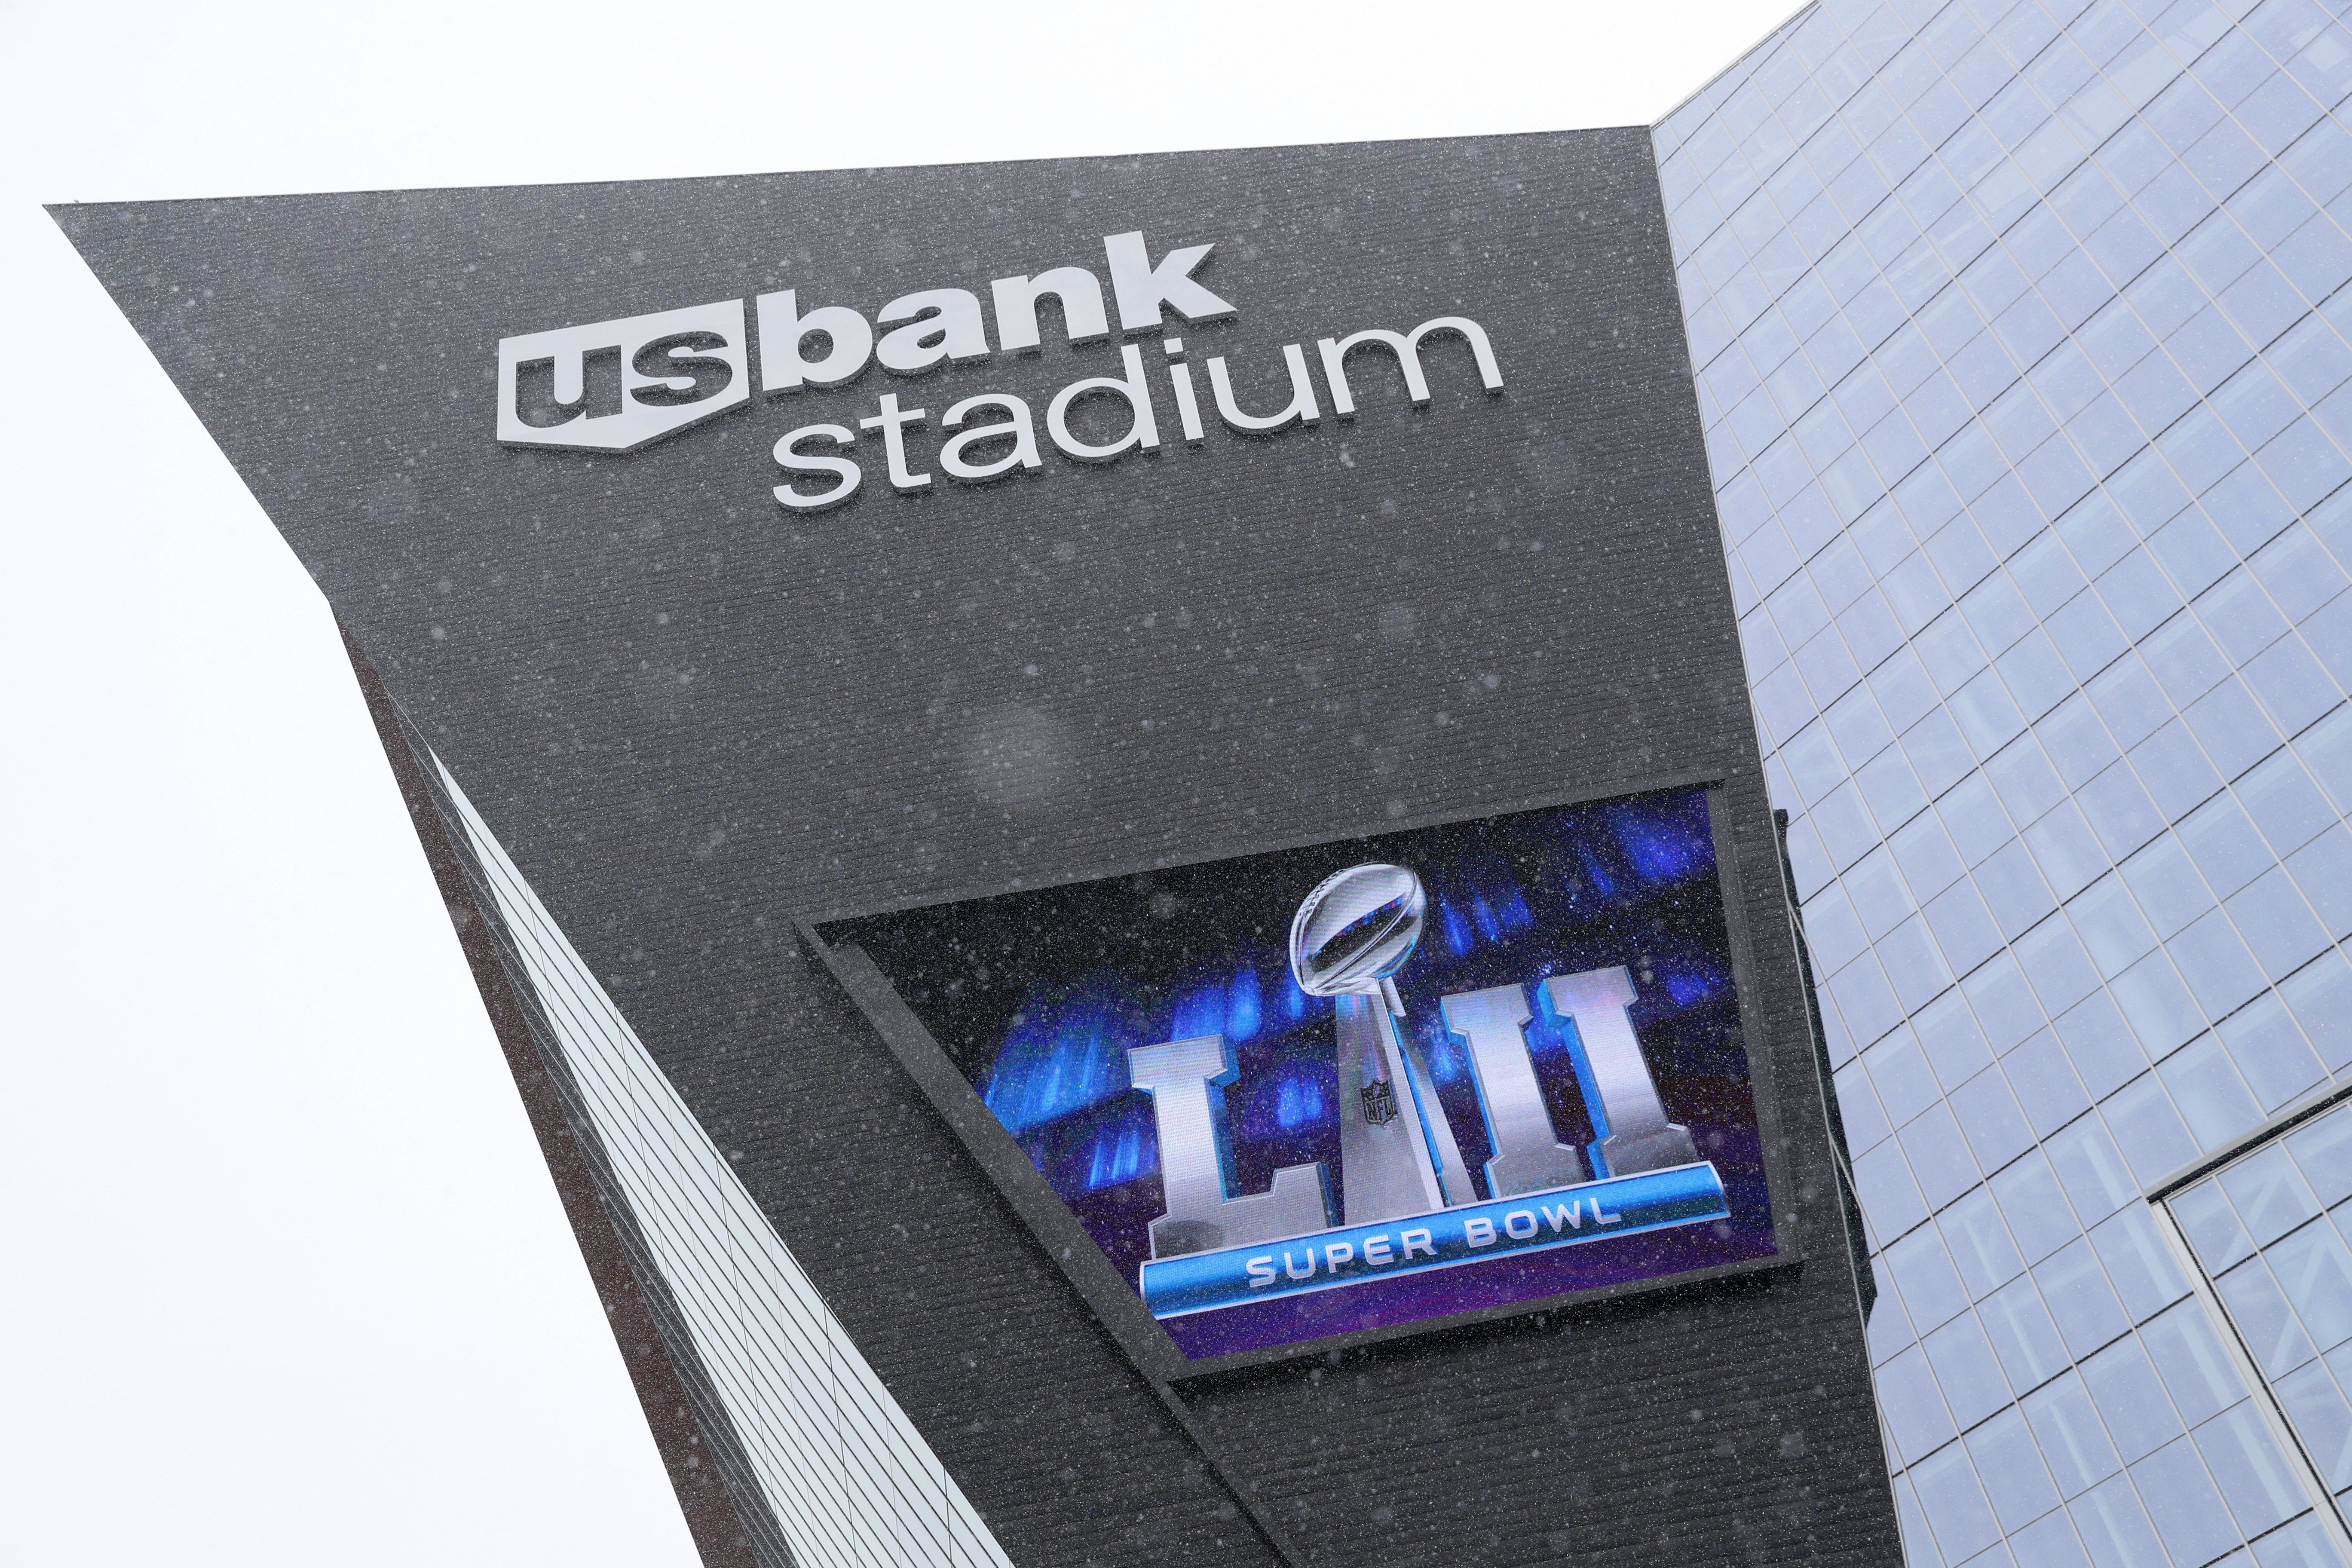 Snow falls in front of US Bank Stadium on the eve of Super Bowl LII at US Bank Stadium in Minneapolis, Minnesota, USA, on 03 February 2018. The NFC ChampionsPhiladelphiaEagleswill play the AFC Champions New England Patriots in the National Football League's annual championship game on 04 February. EFE